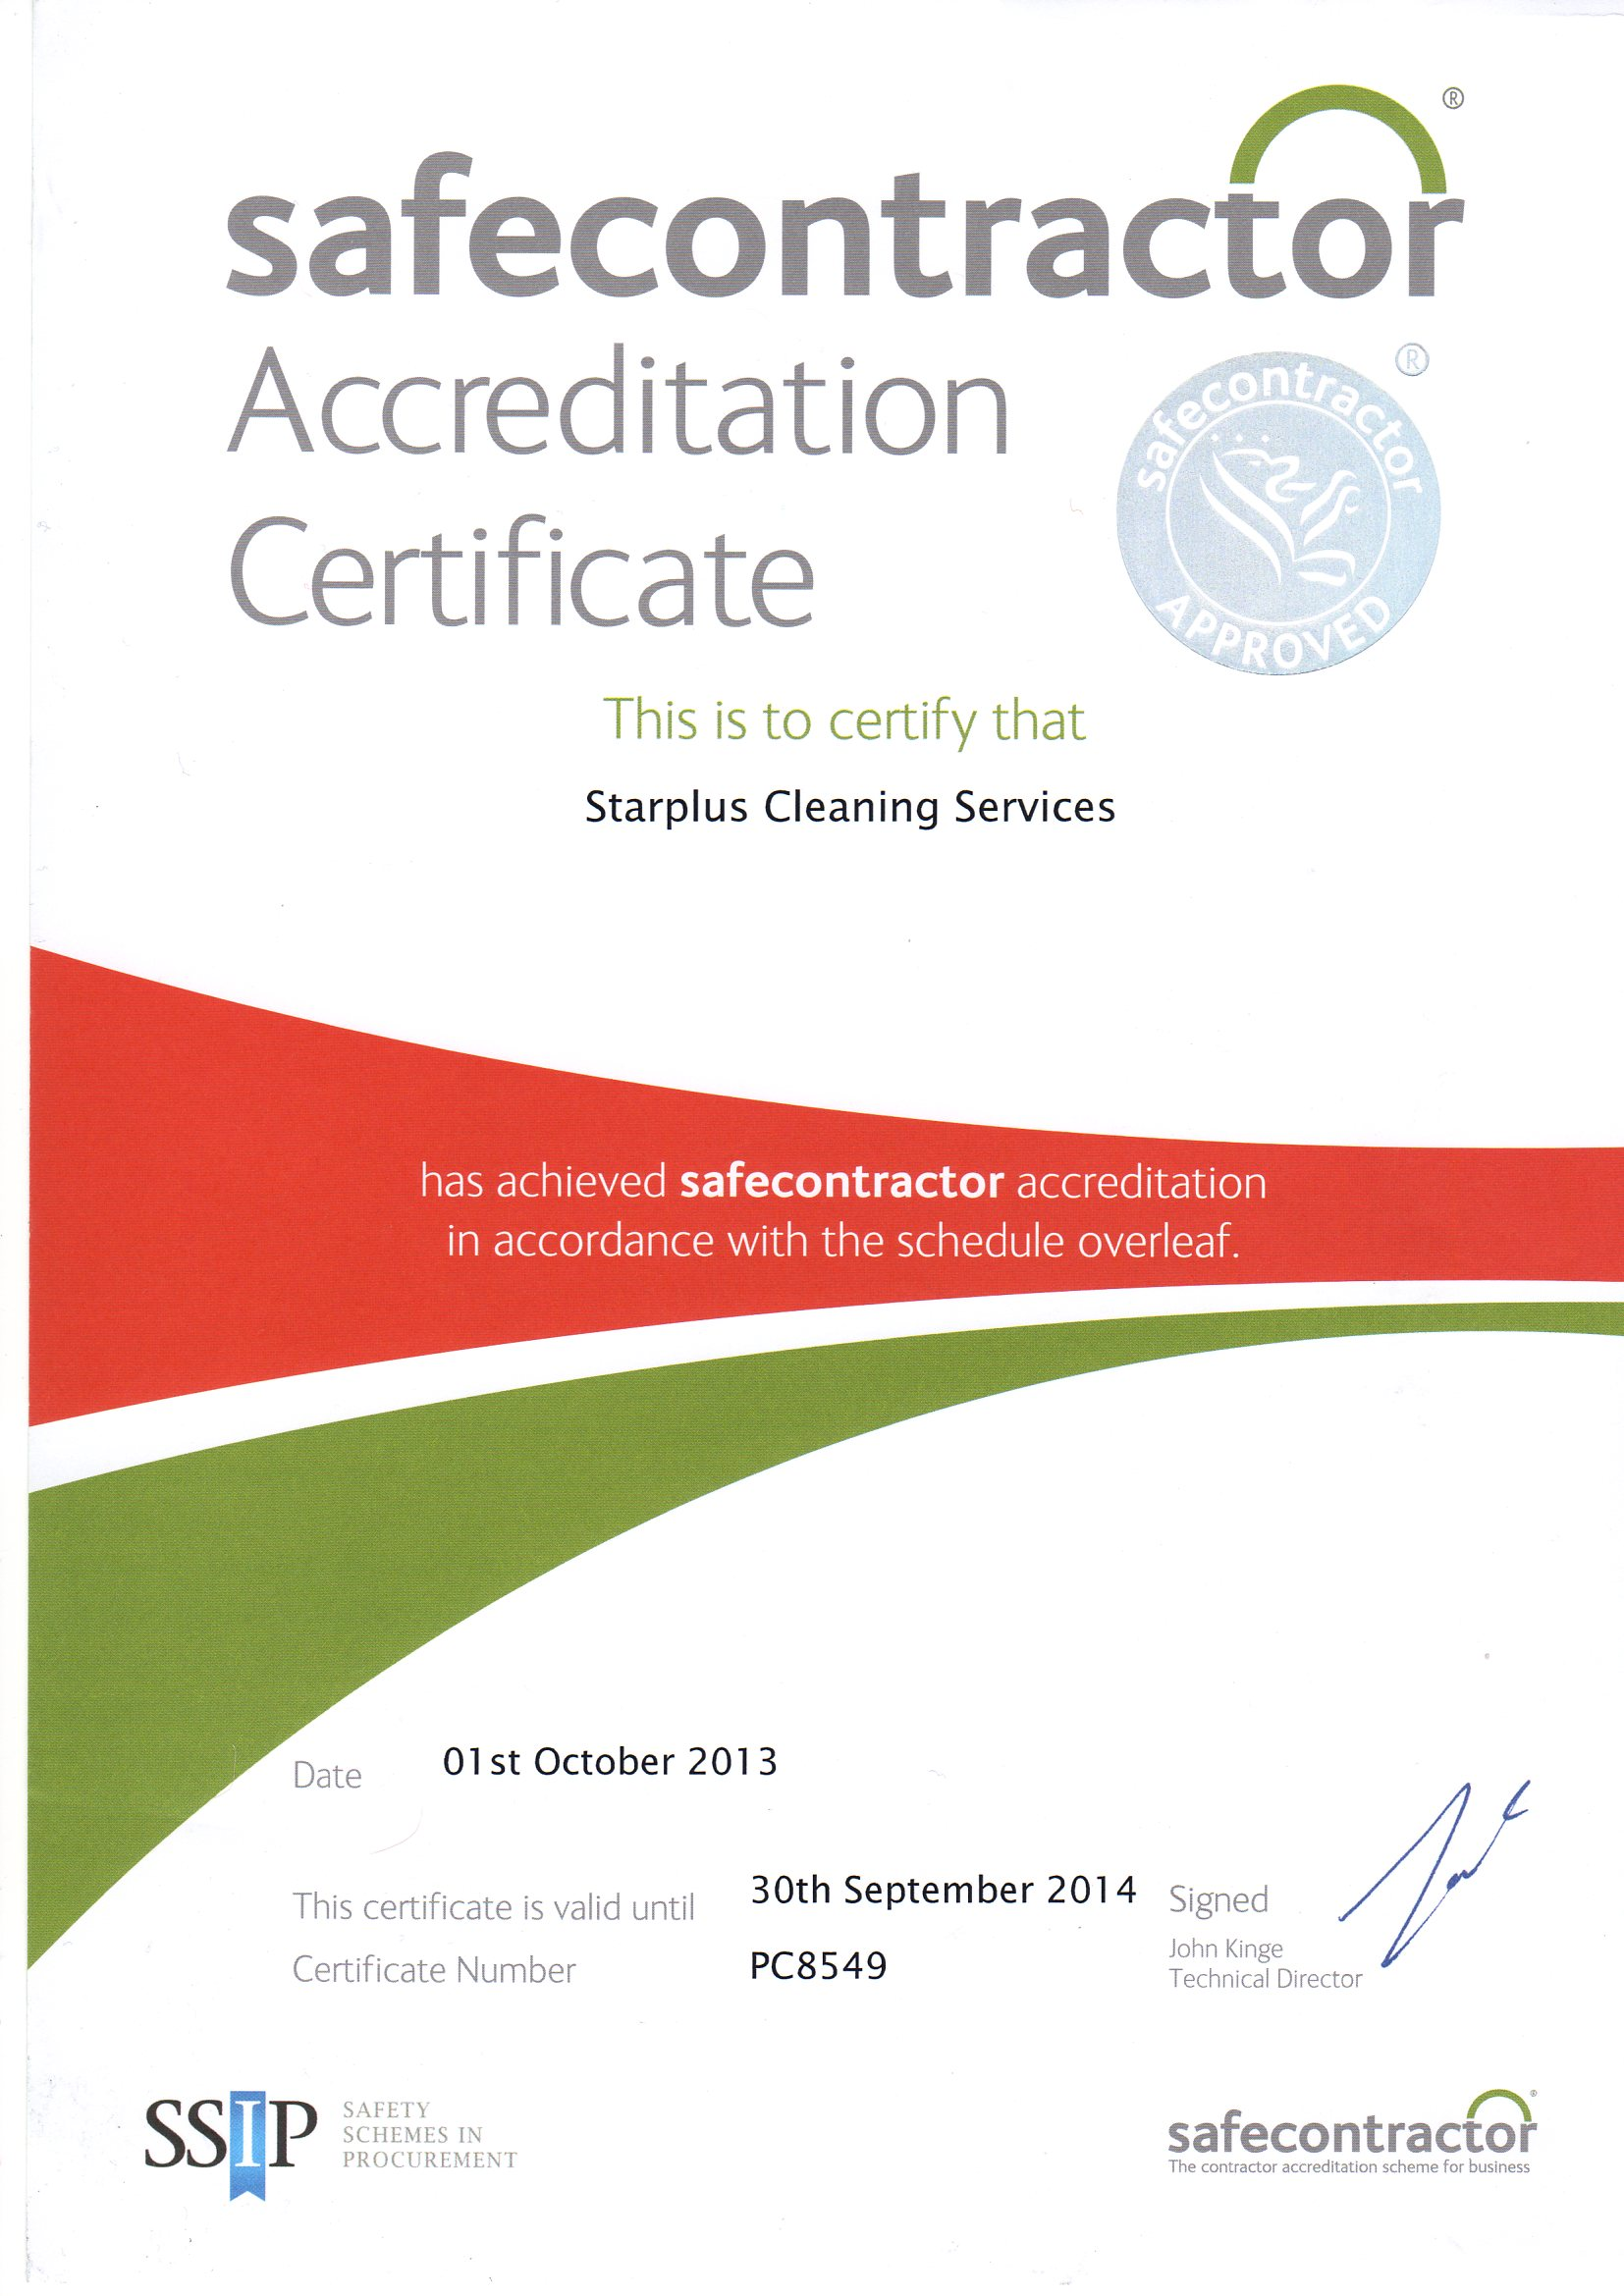 Safe contractor accreditation 2013